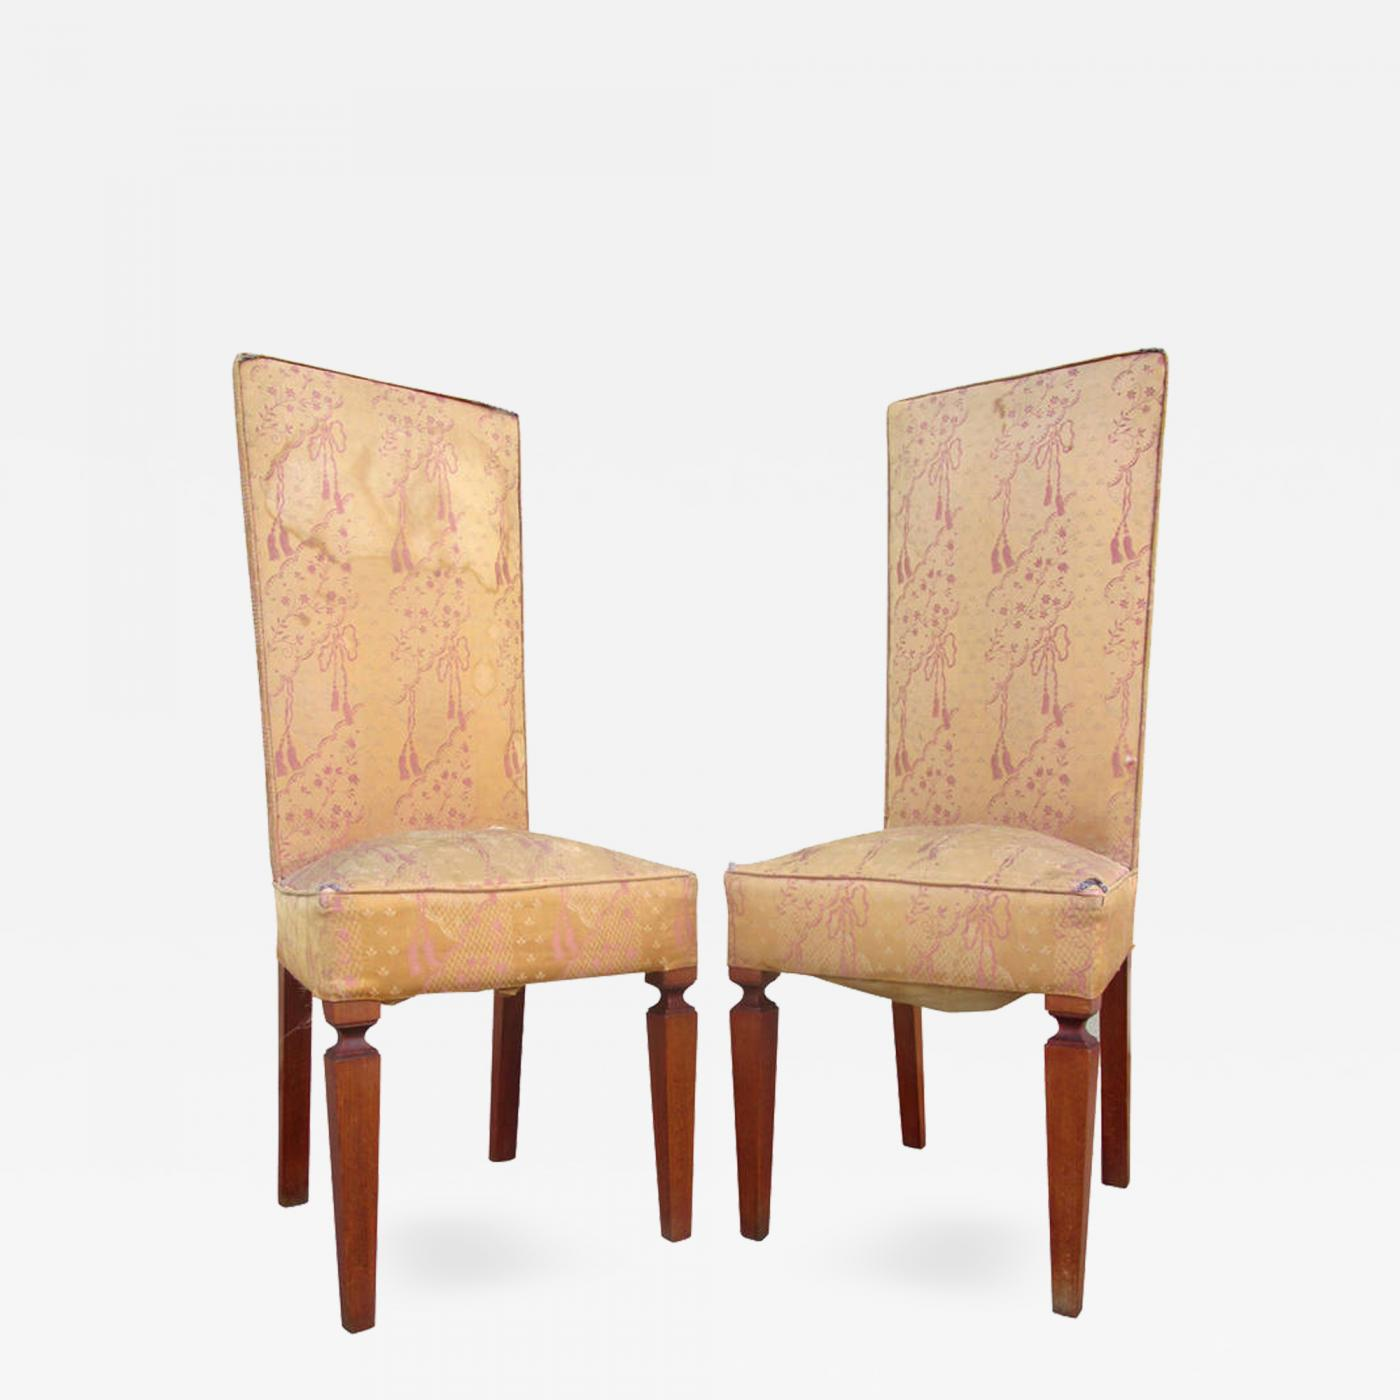 Andre Arbus Set Of 6 French Art Deco Chairs In The Manner Of Andre